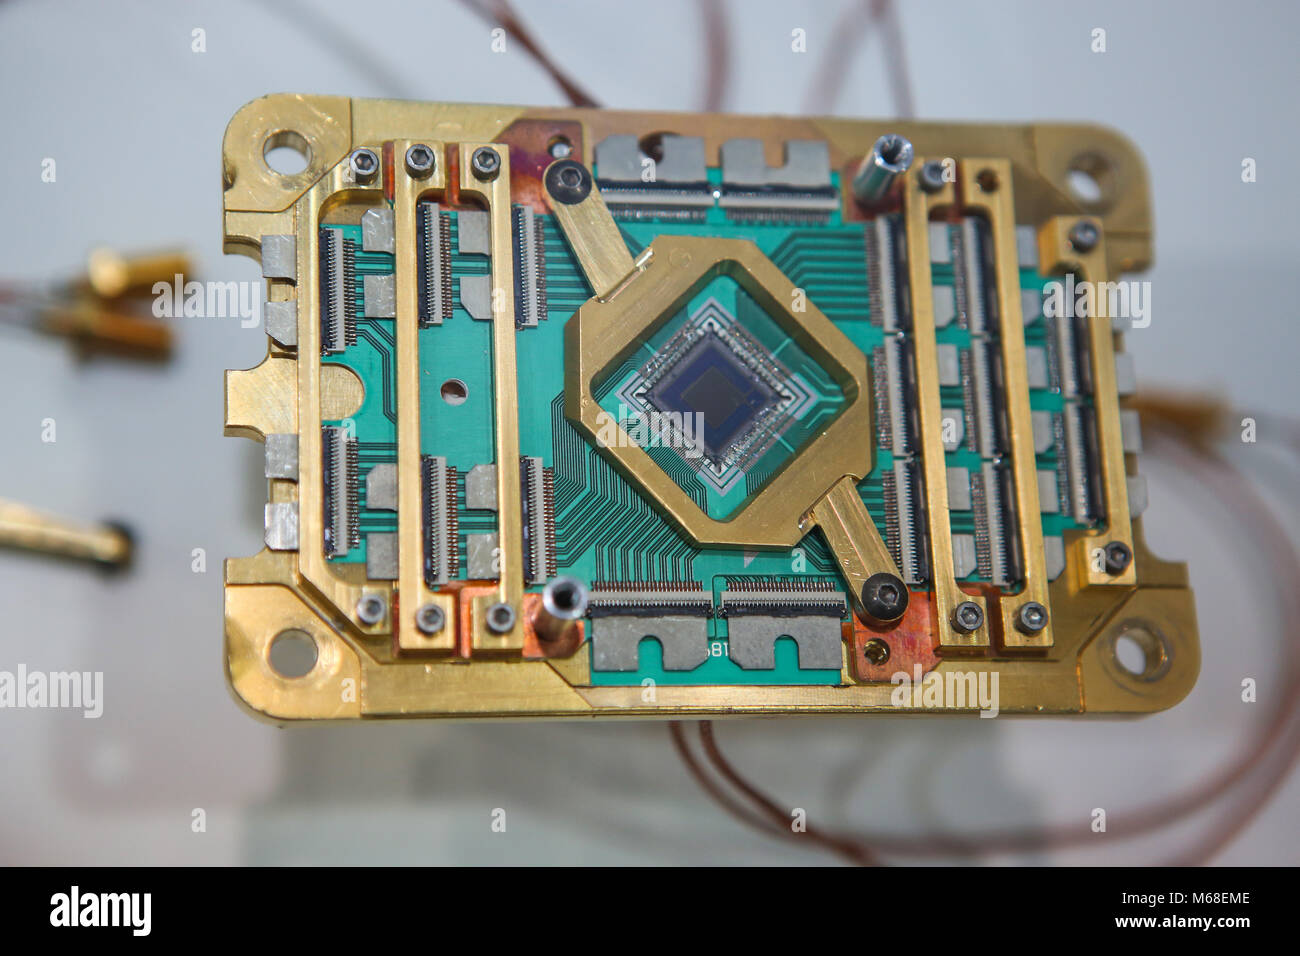 Hanover, Germany. 19th March, 2017. CeBIT 2017, ICT trade fair: D-Wave 2000Q Quantum Computer processor with 2048 - Stock Image